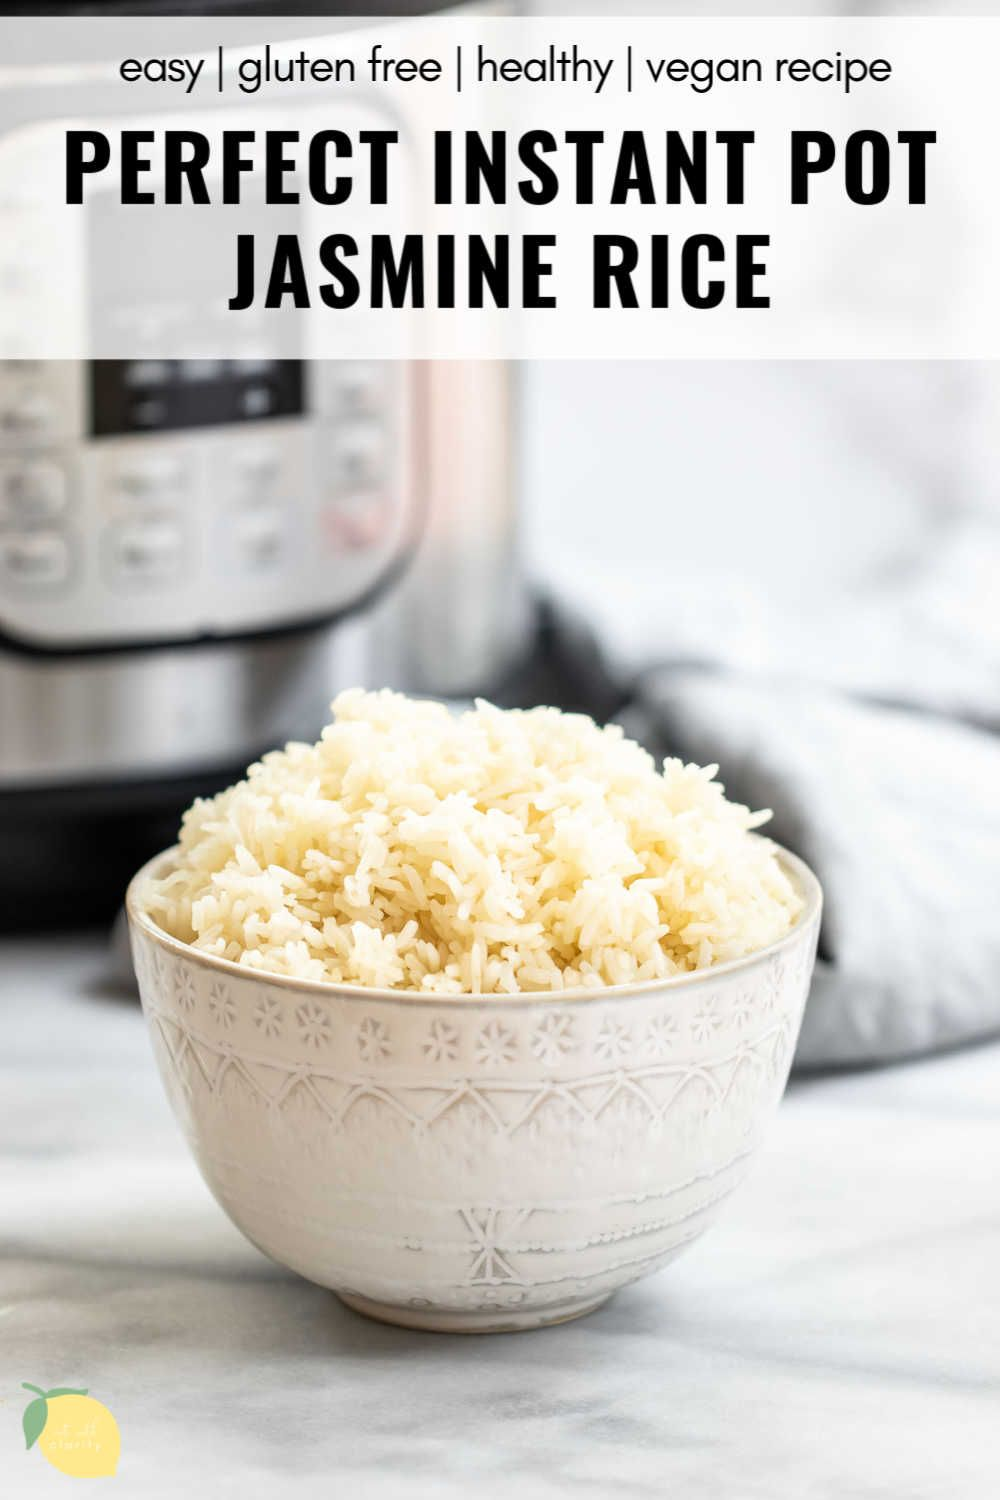 Sick of poorly cooked rice? This instant pot jasmine rice is fluffy and perfectly cooked every time! This easy recipe just requires a few simple ingredients and is naturally gluten free and vegan. It's freezer friendly and perfect for meal prep! In this post I'll show you how to cook perfect rice with a secret tip to give it tons of flavor! #instantpotrecipe #instantpotrice #jasminerice #ricerecipe #eatwithclarity